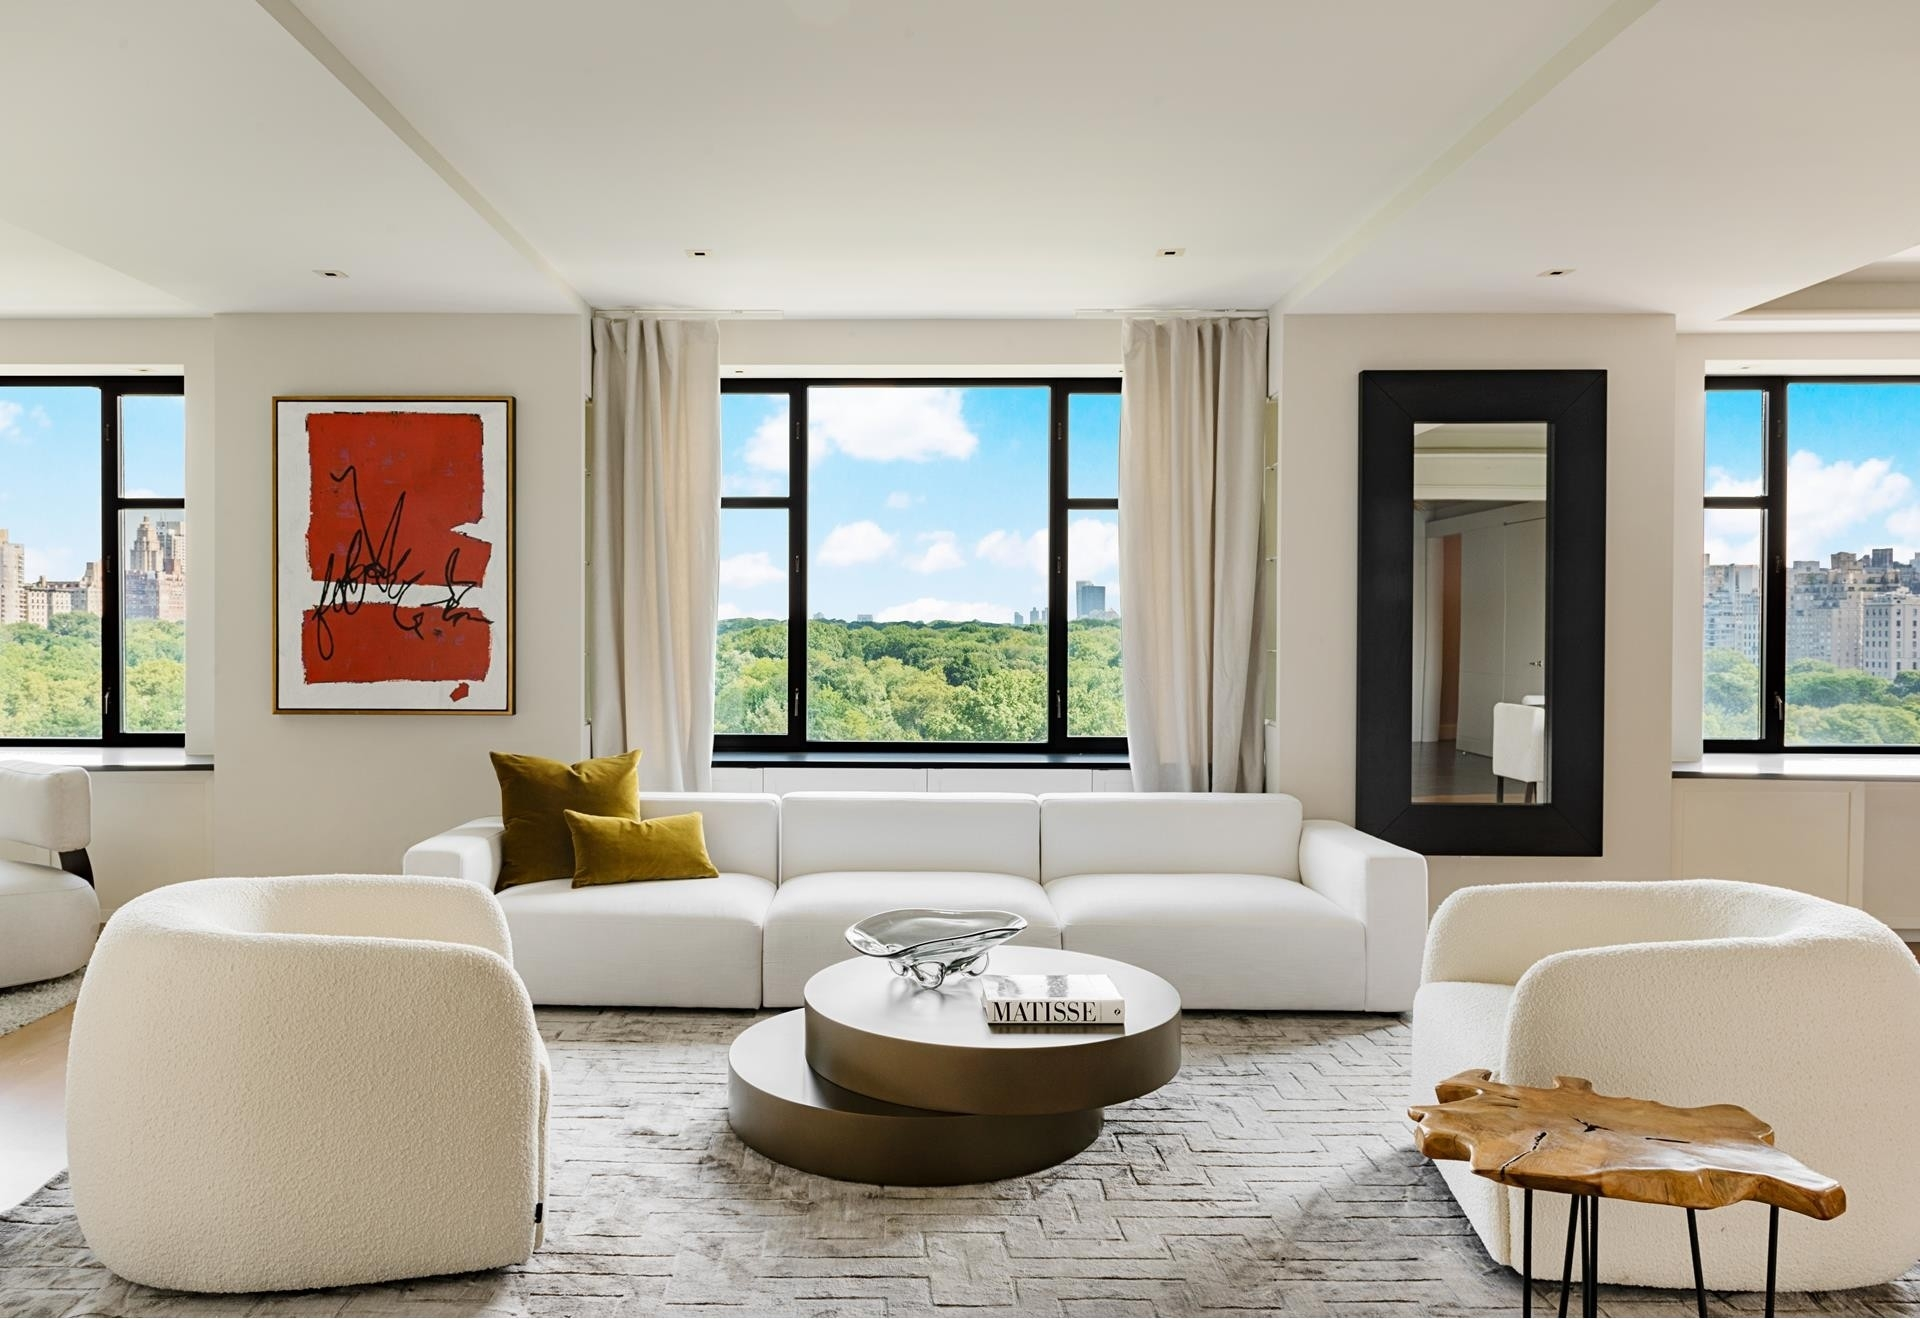 Co-op / Condo for Sale at 110 CENTRAL PARK S, 12ABC Central Park South, New York, NY 10019